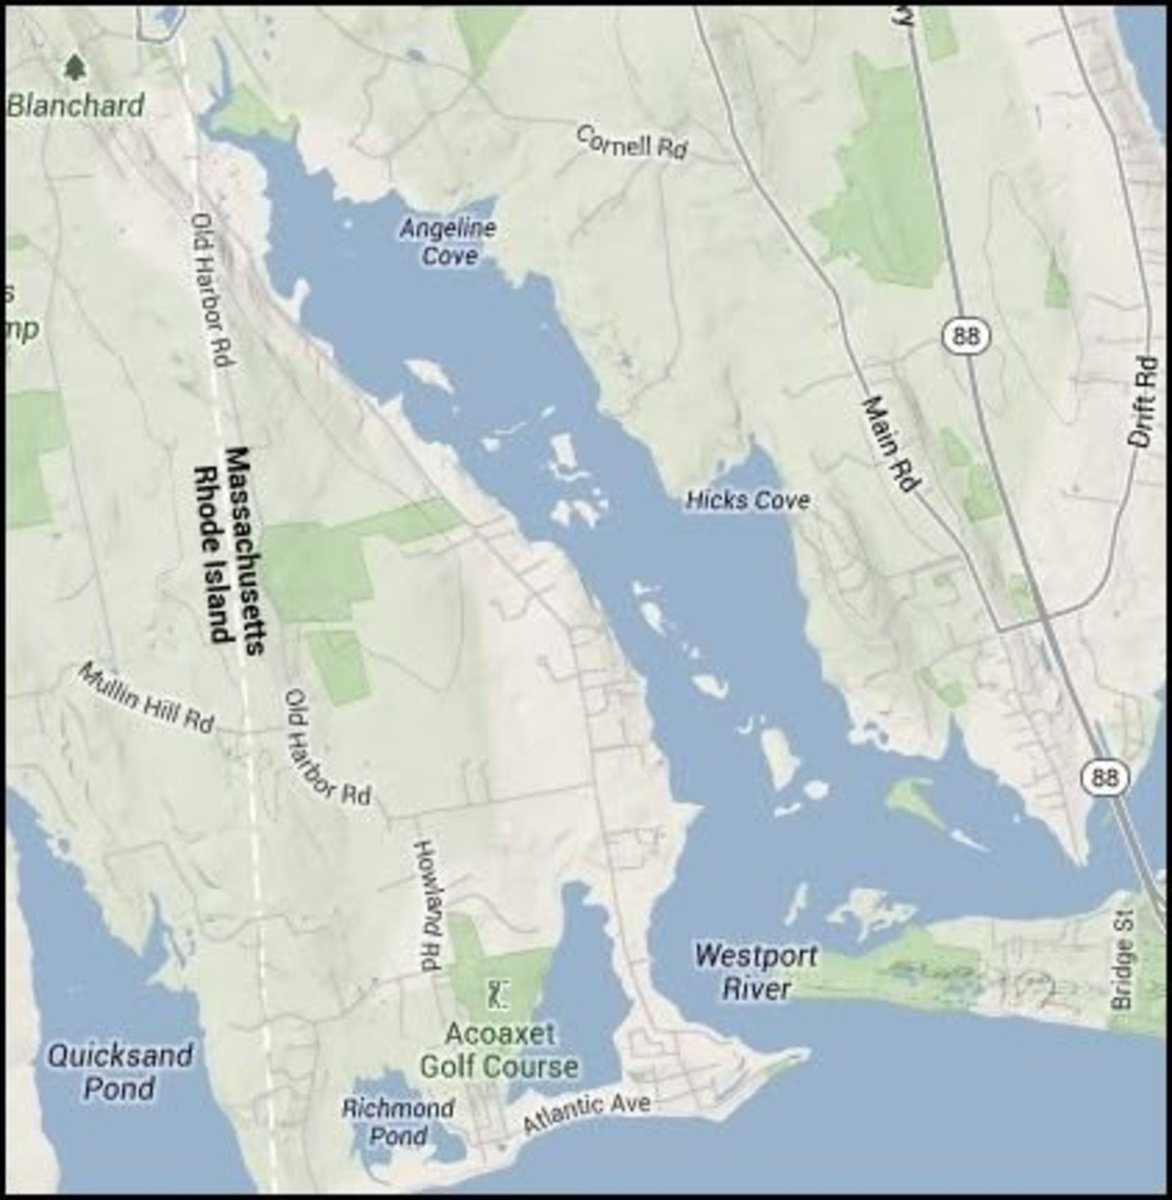 The west and east branches converge near Westport Point.